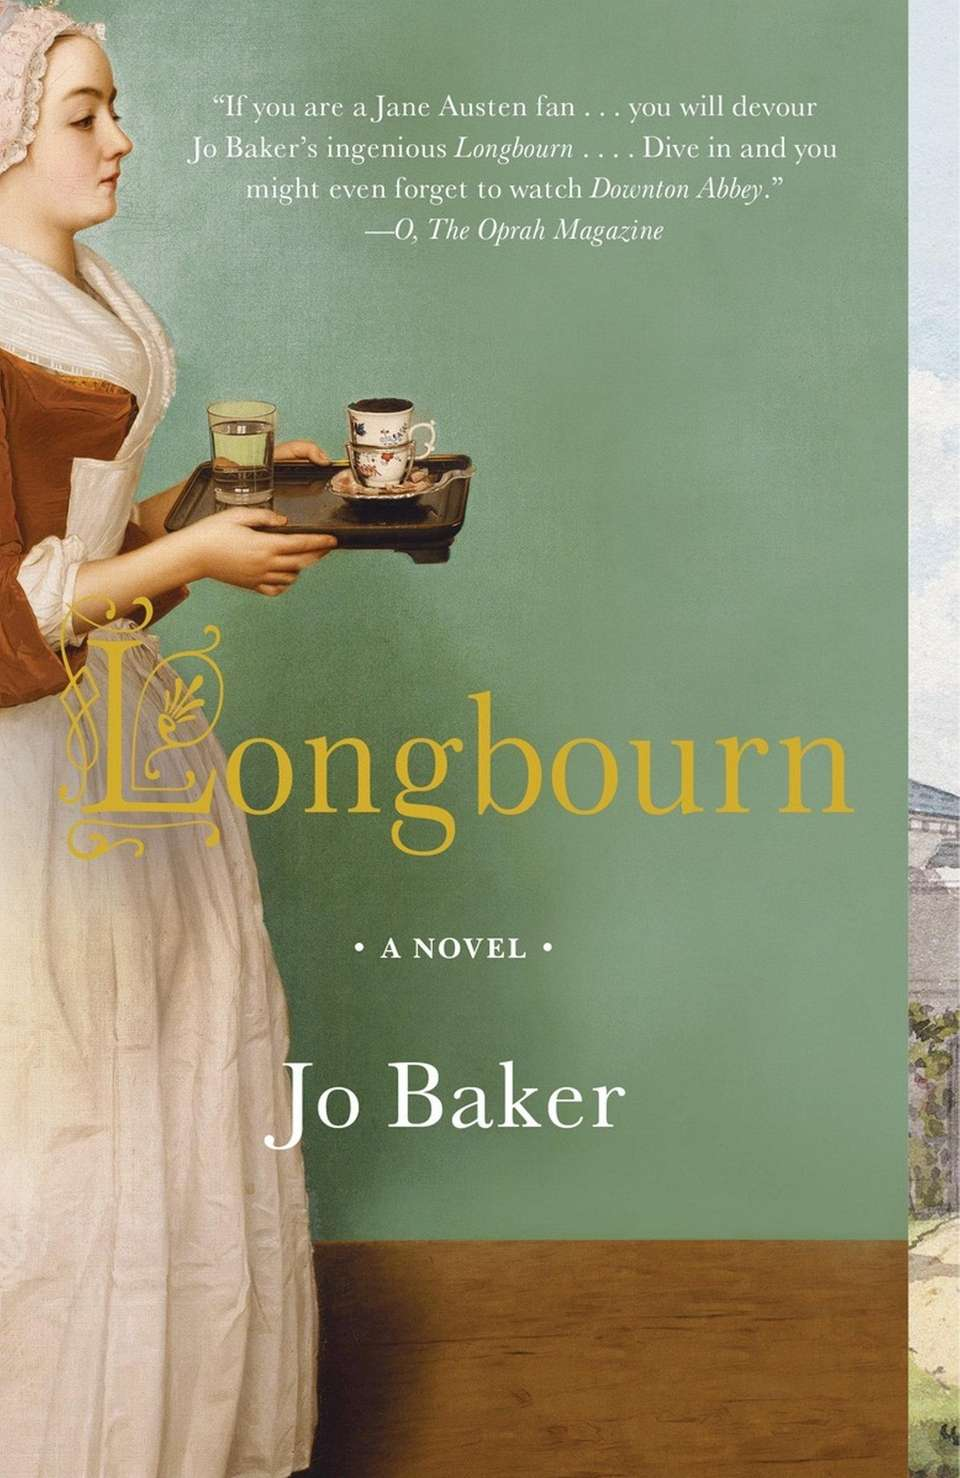 Jo Baker's 2013 novel — which cleverly tells